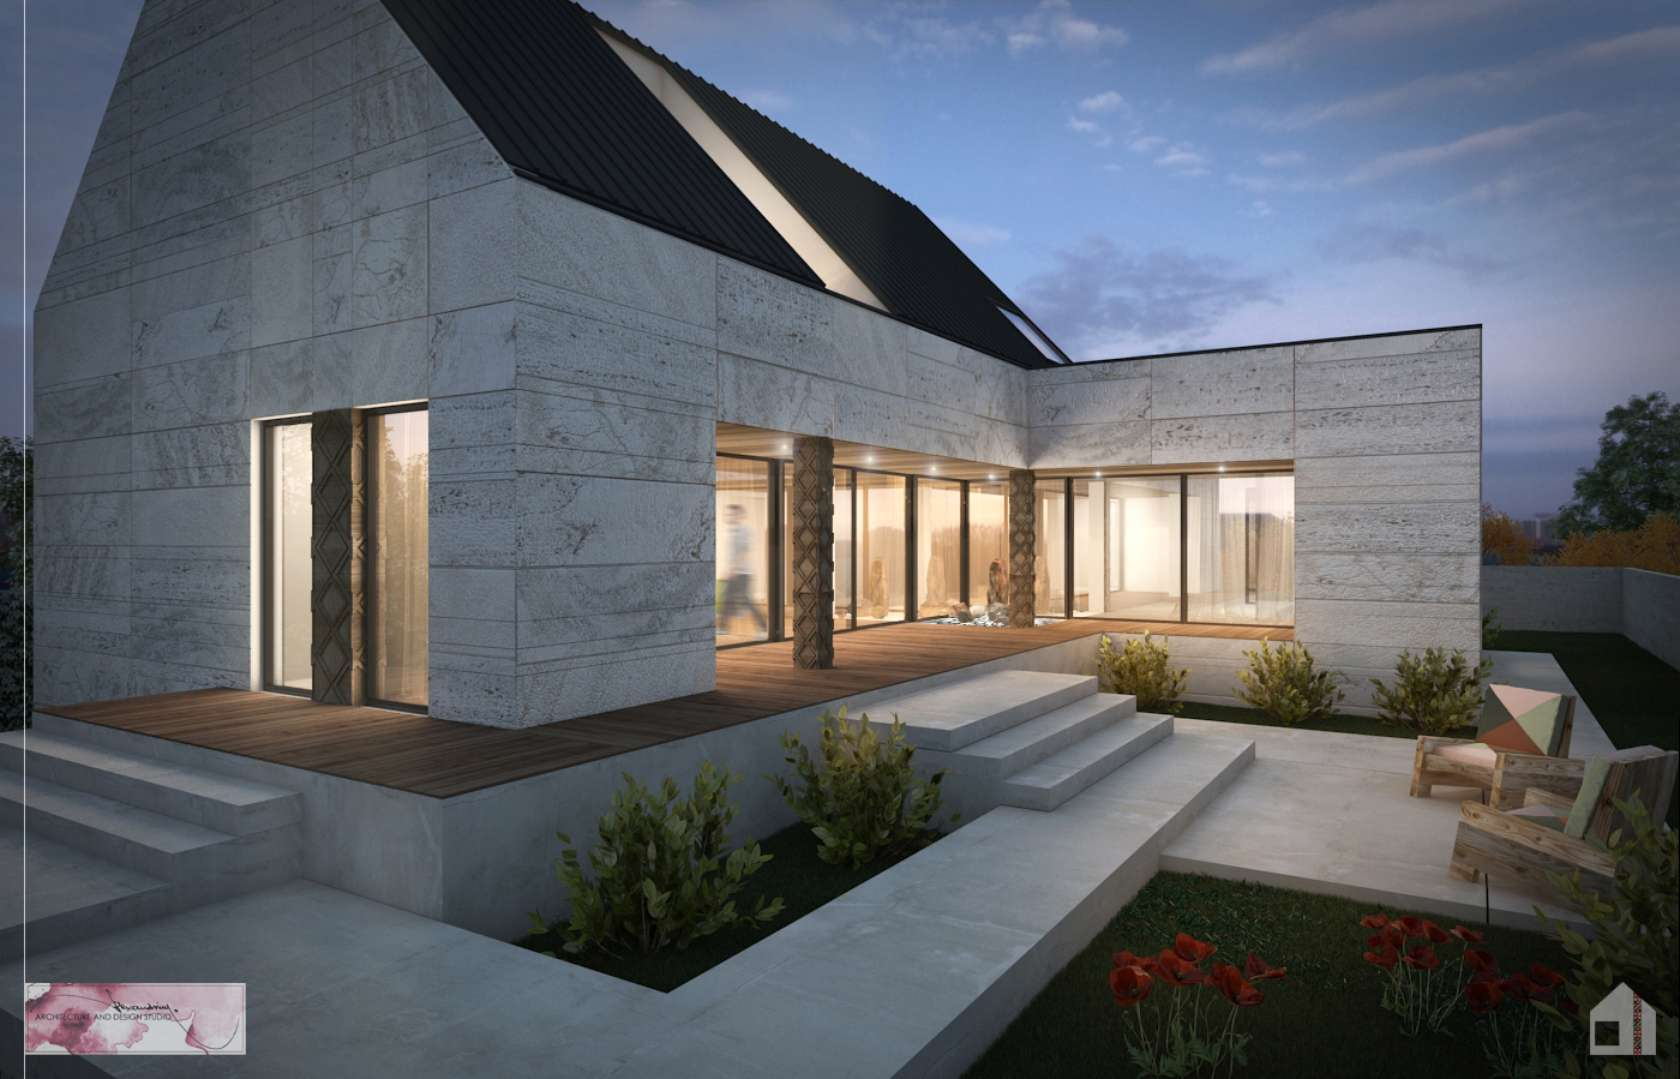 Pitched roof house designs for House design and architecture ideas